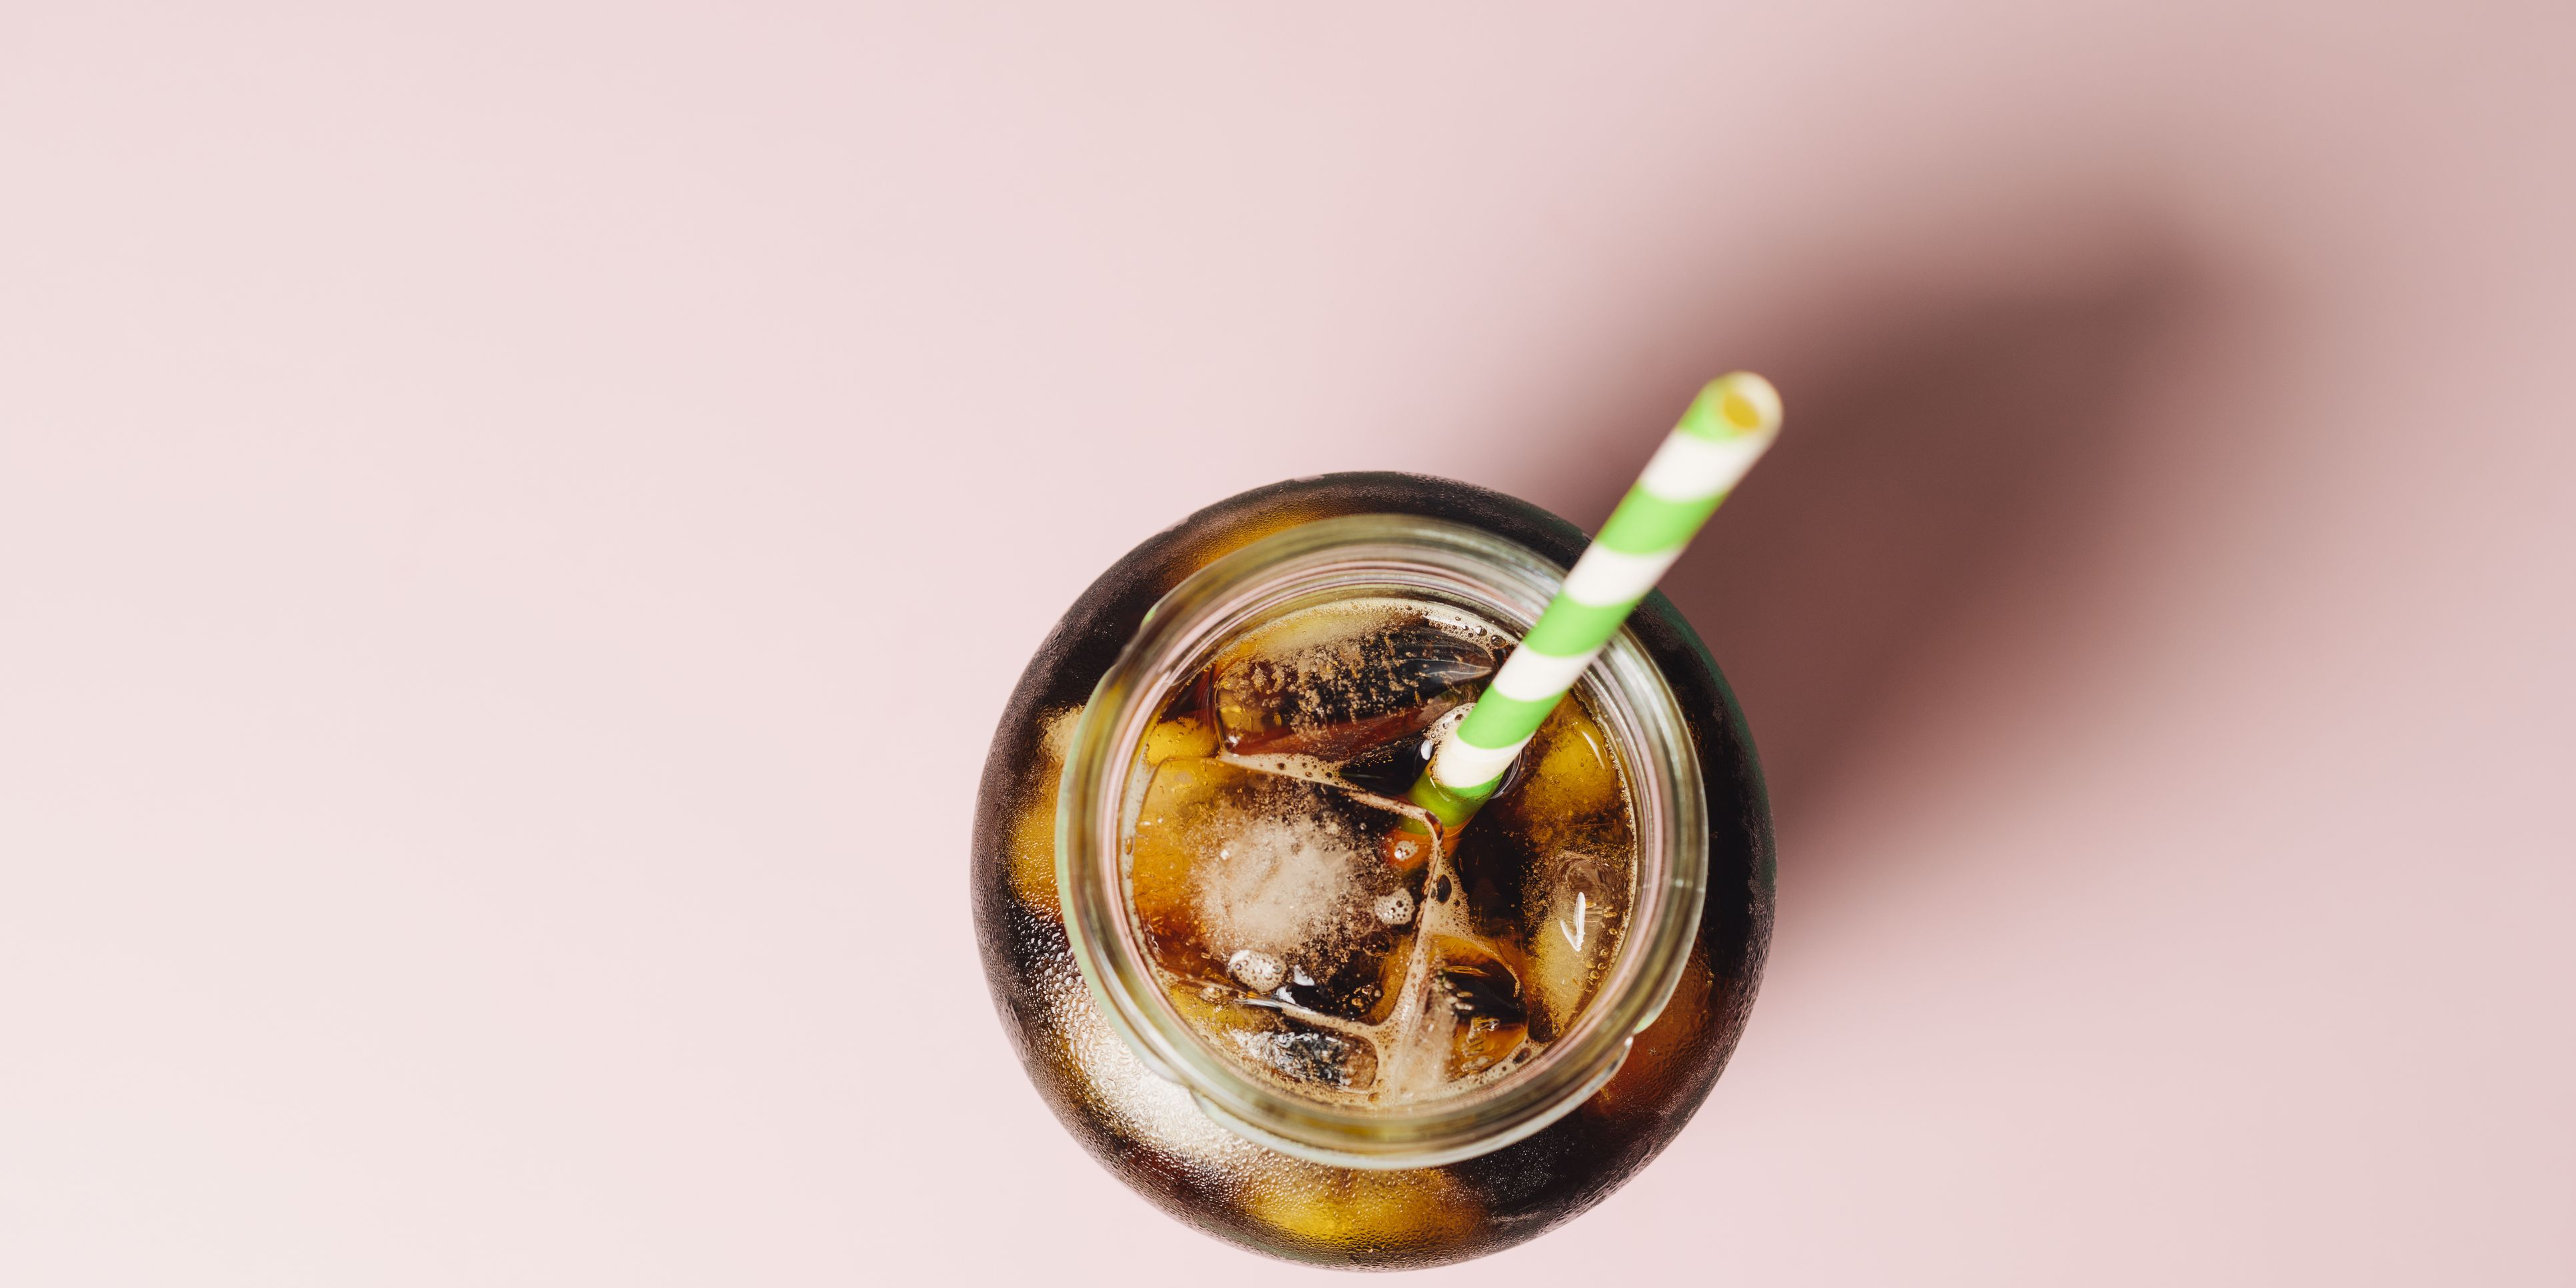 Cold brew coffee against a pink background.